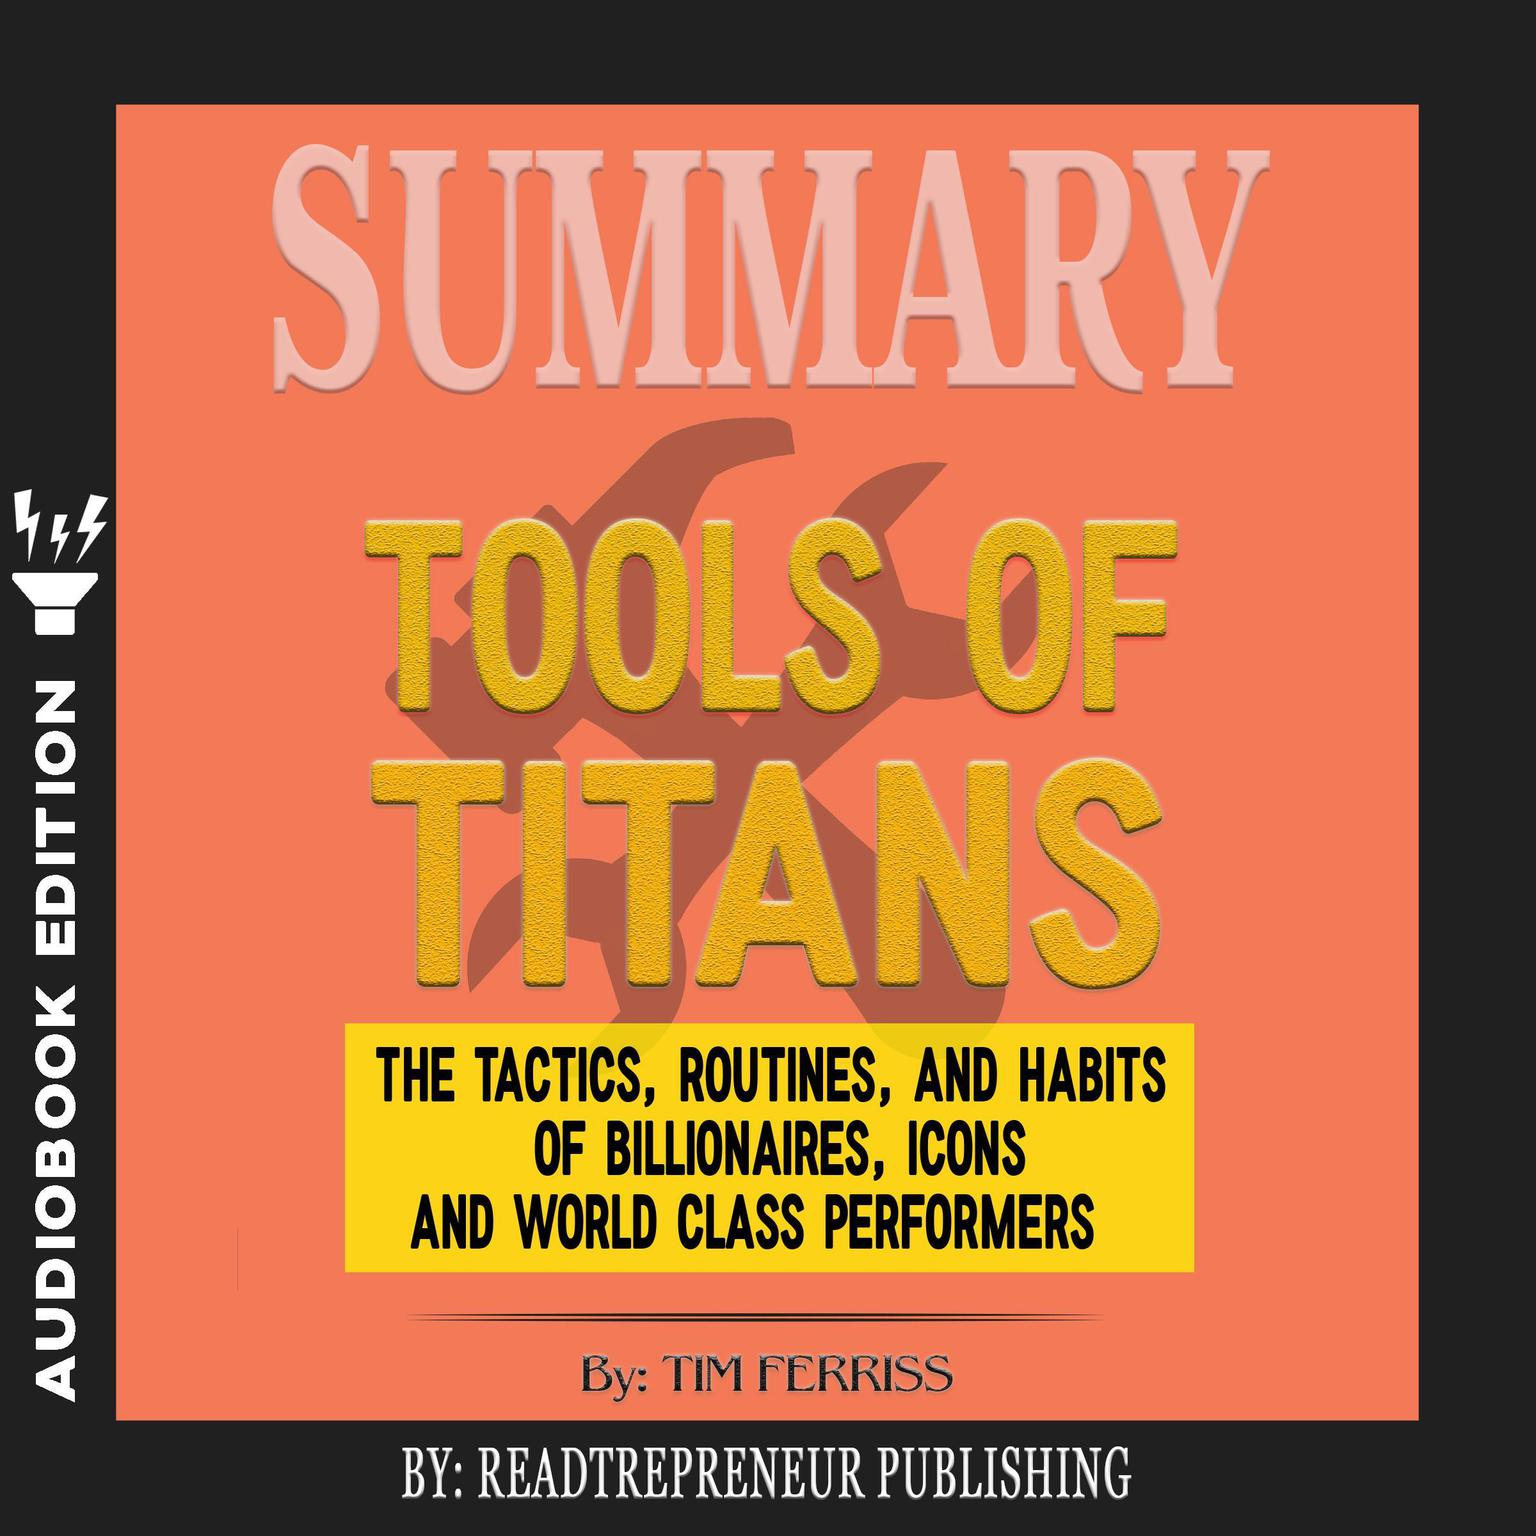 Printable Summary of Tools of Titans: The Tactics, Routines, and Habits of Billionaires, Icons, and World-Class Performers by Timothy Ferriss Audiobook Cover Art